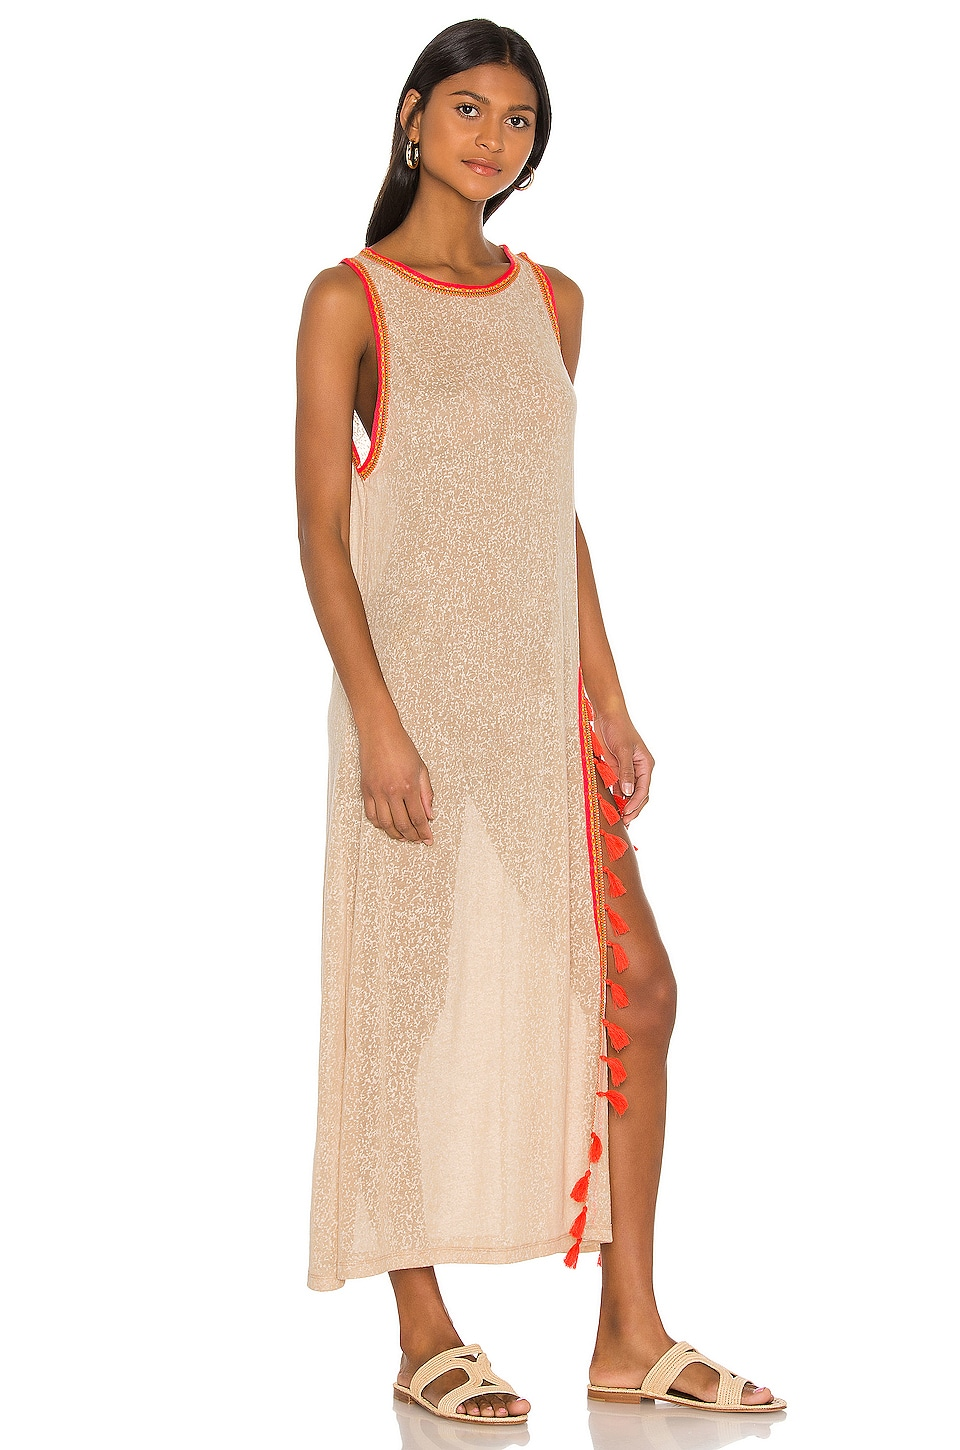 Tassel Slit Dress, view 2, click to view large image.